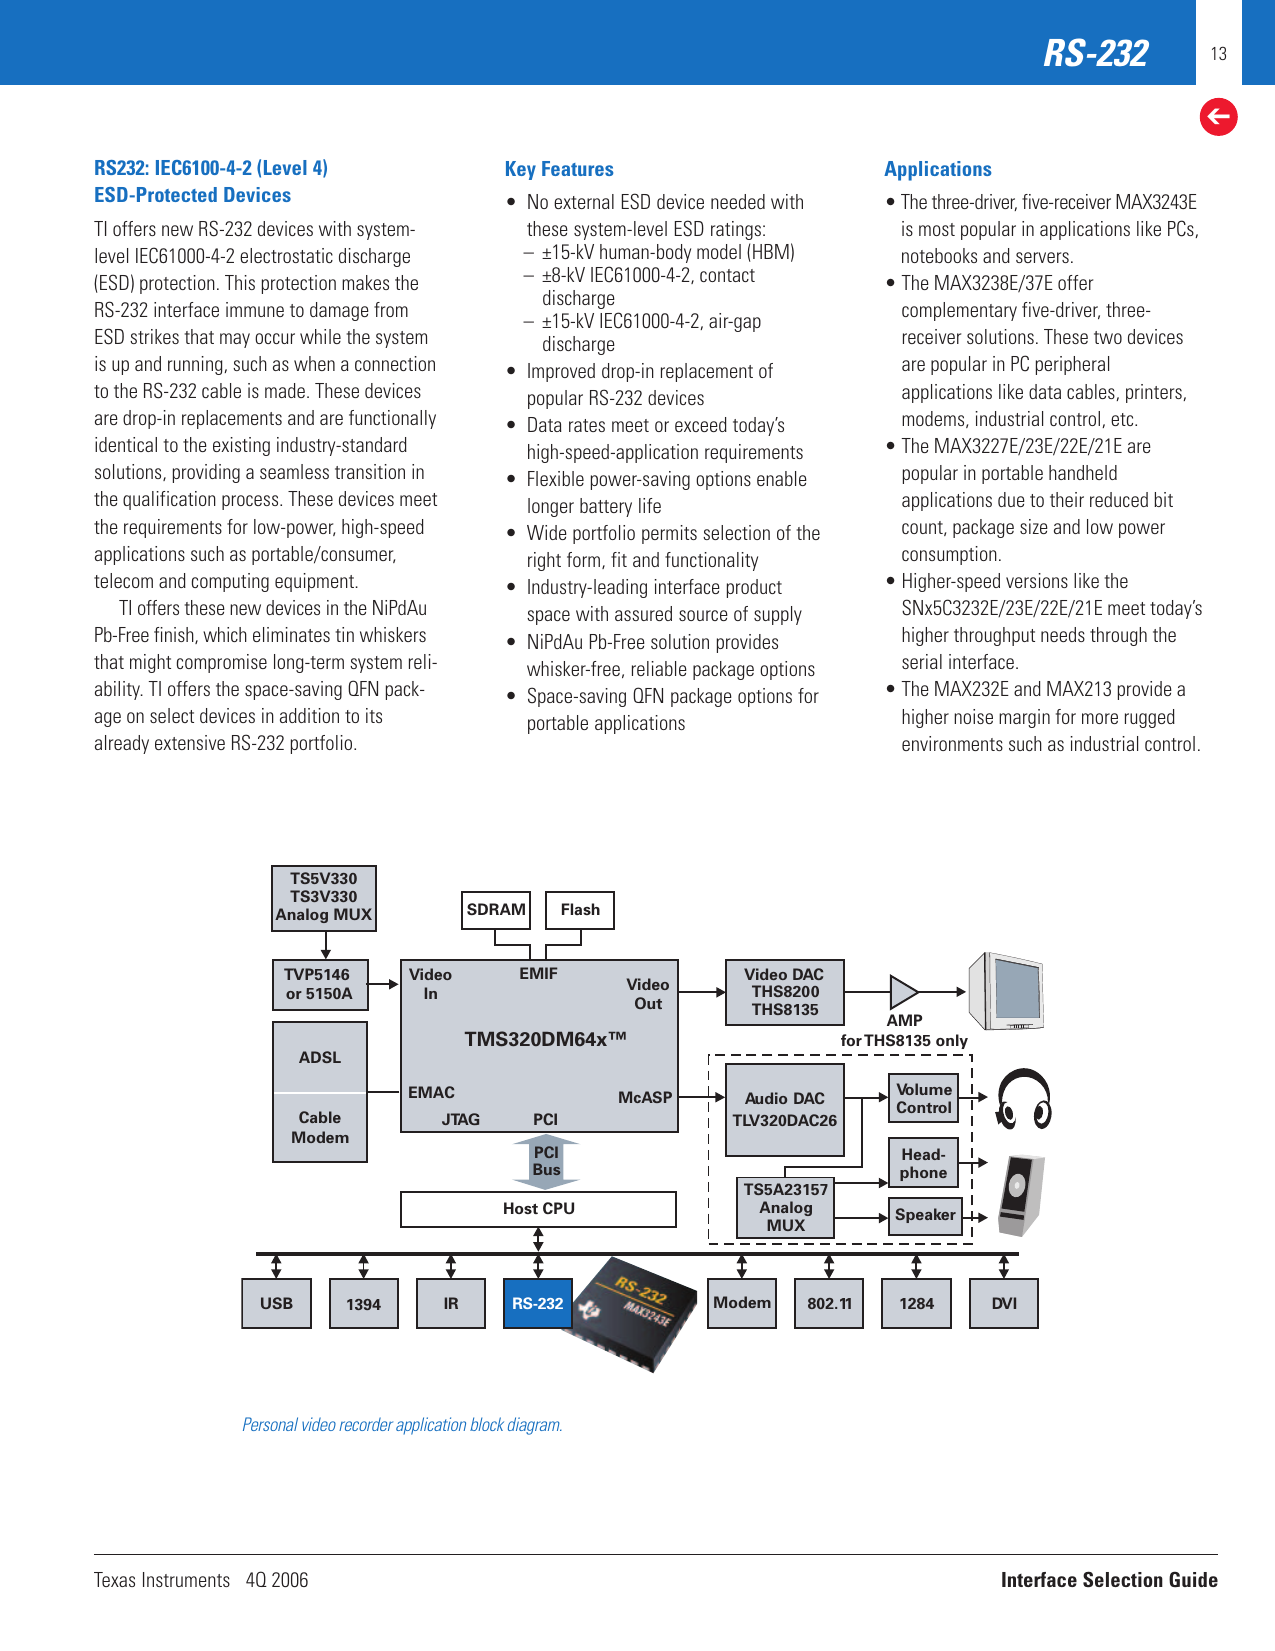 Texas Instruments Technology For Innovators 4Q 2006 Users Manual